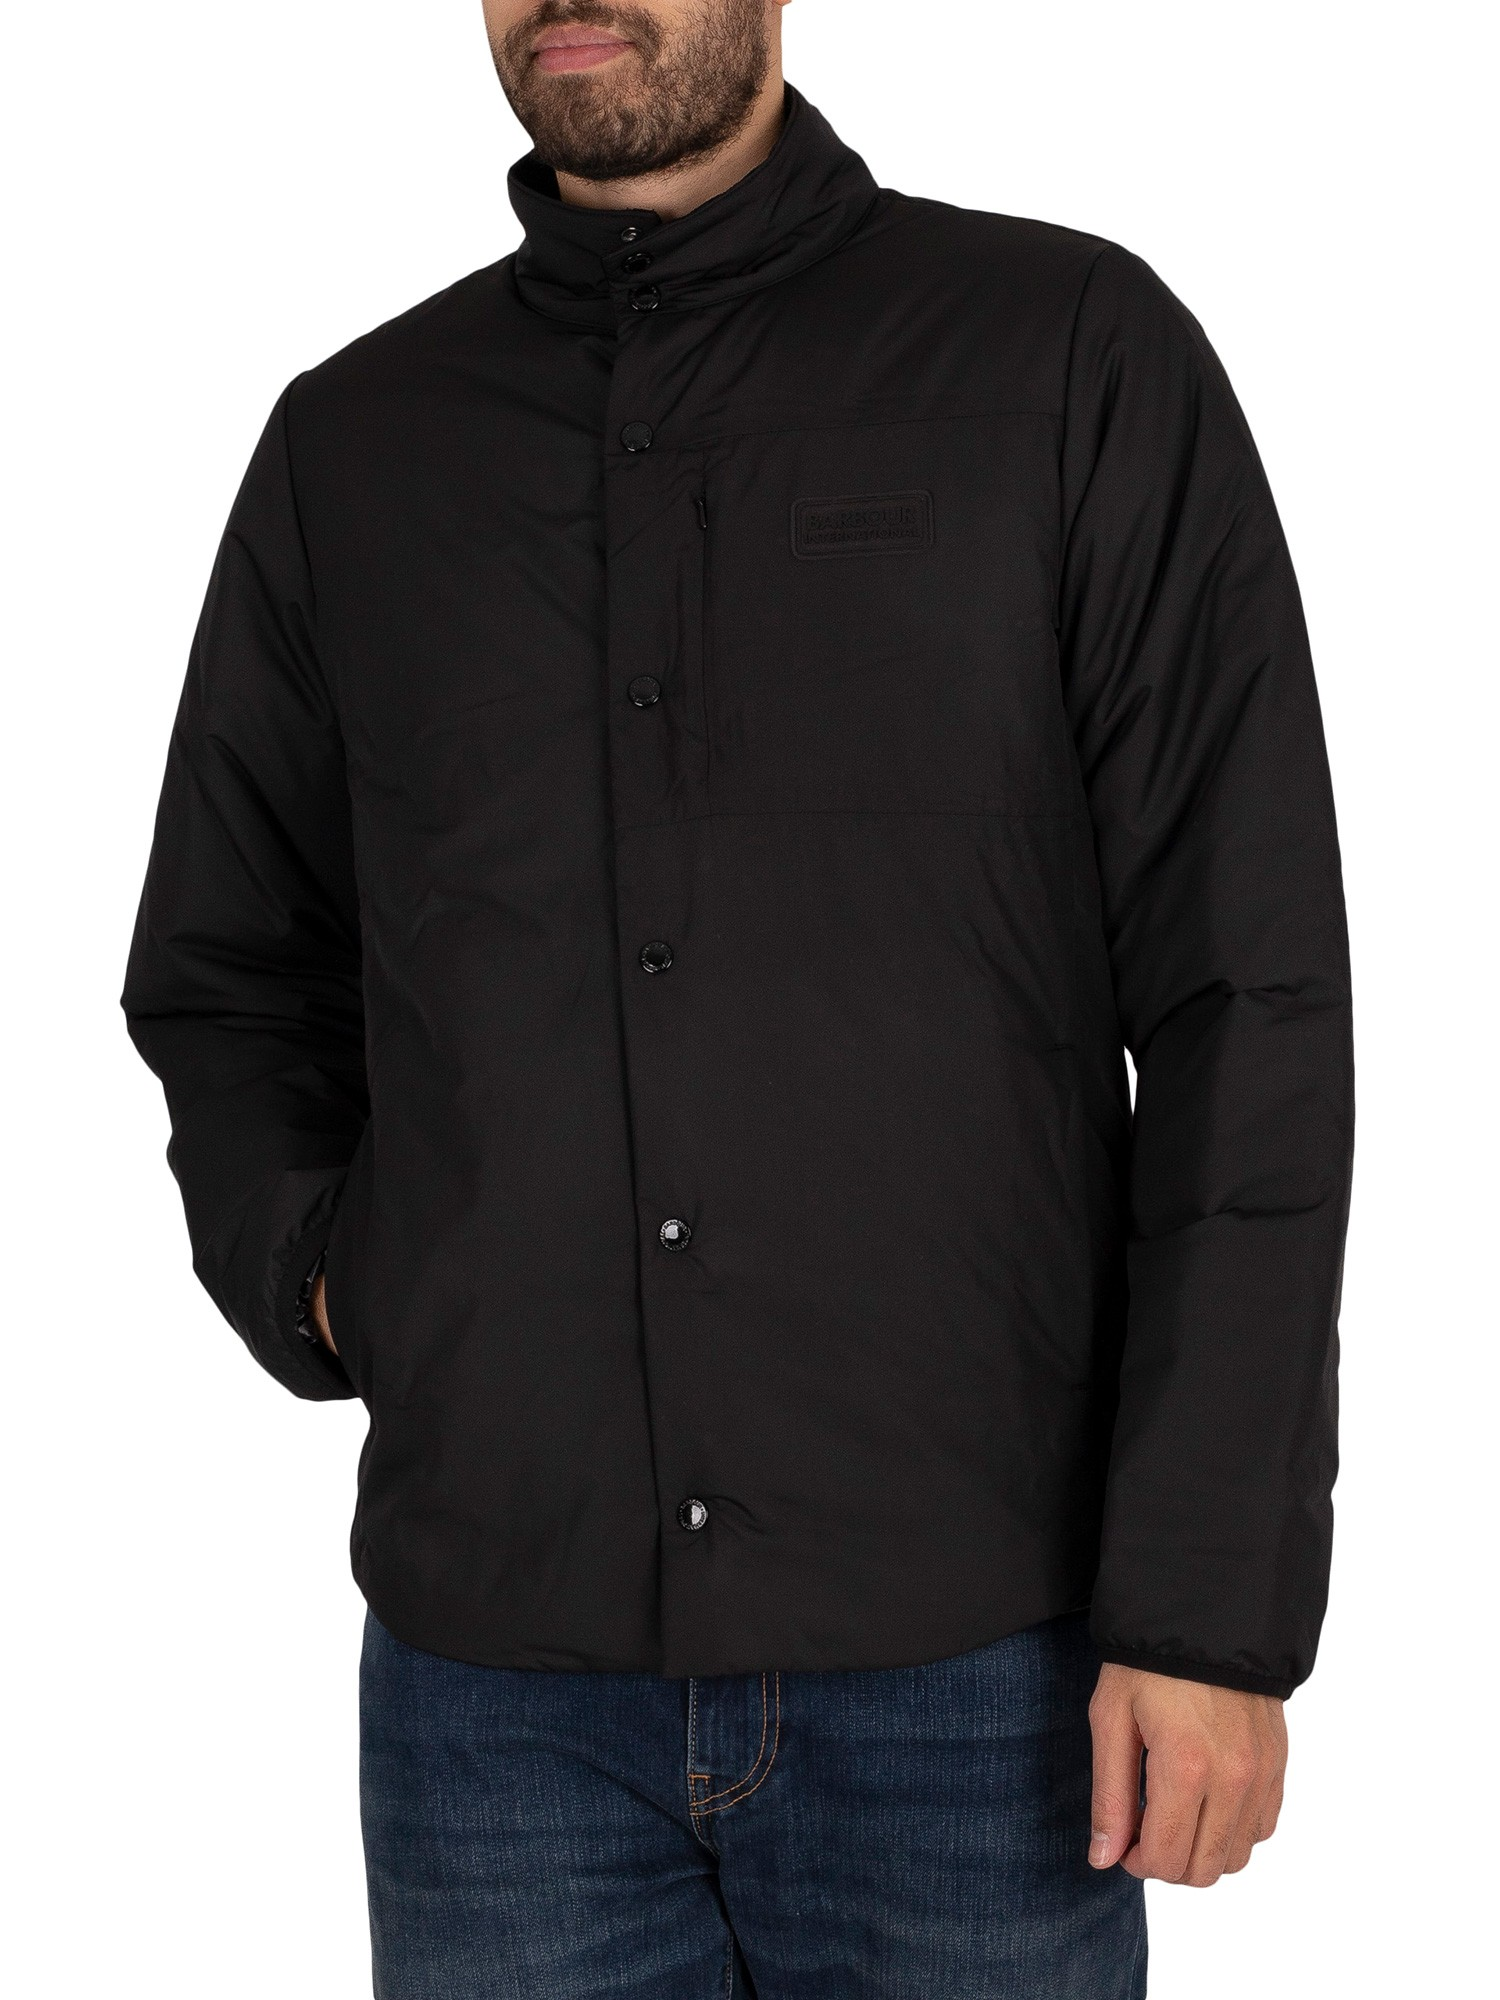 Viewforth Quilted Jacket